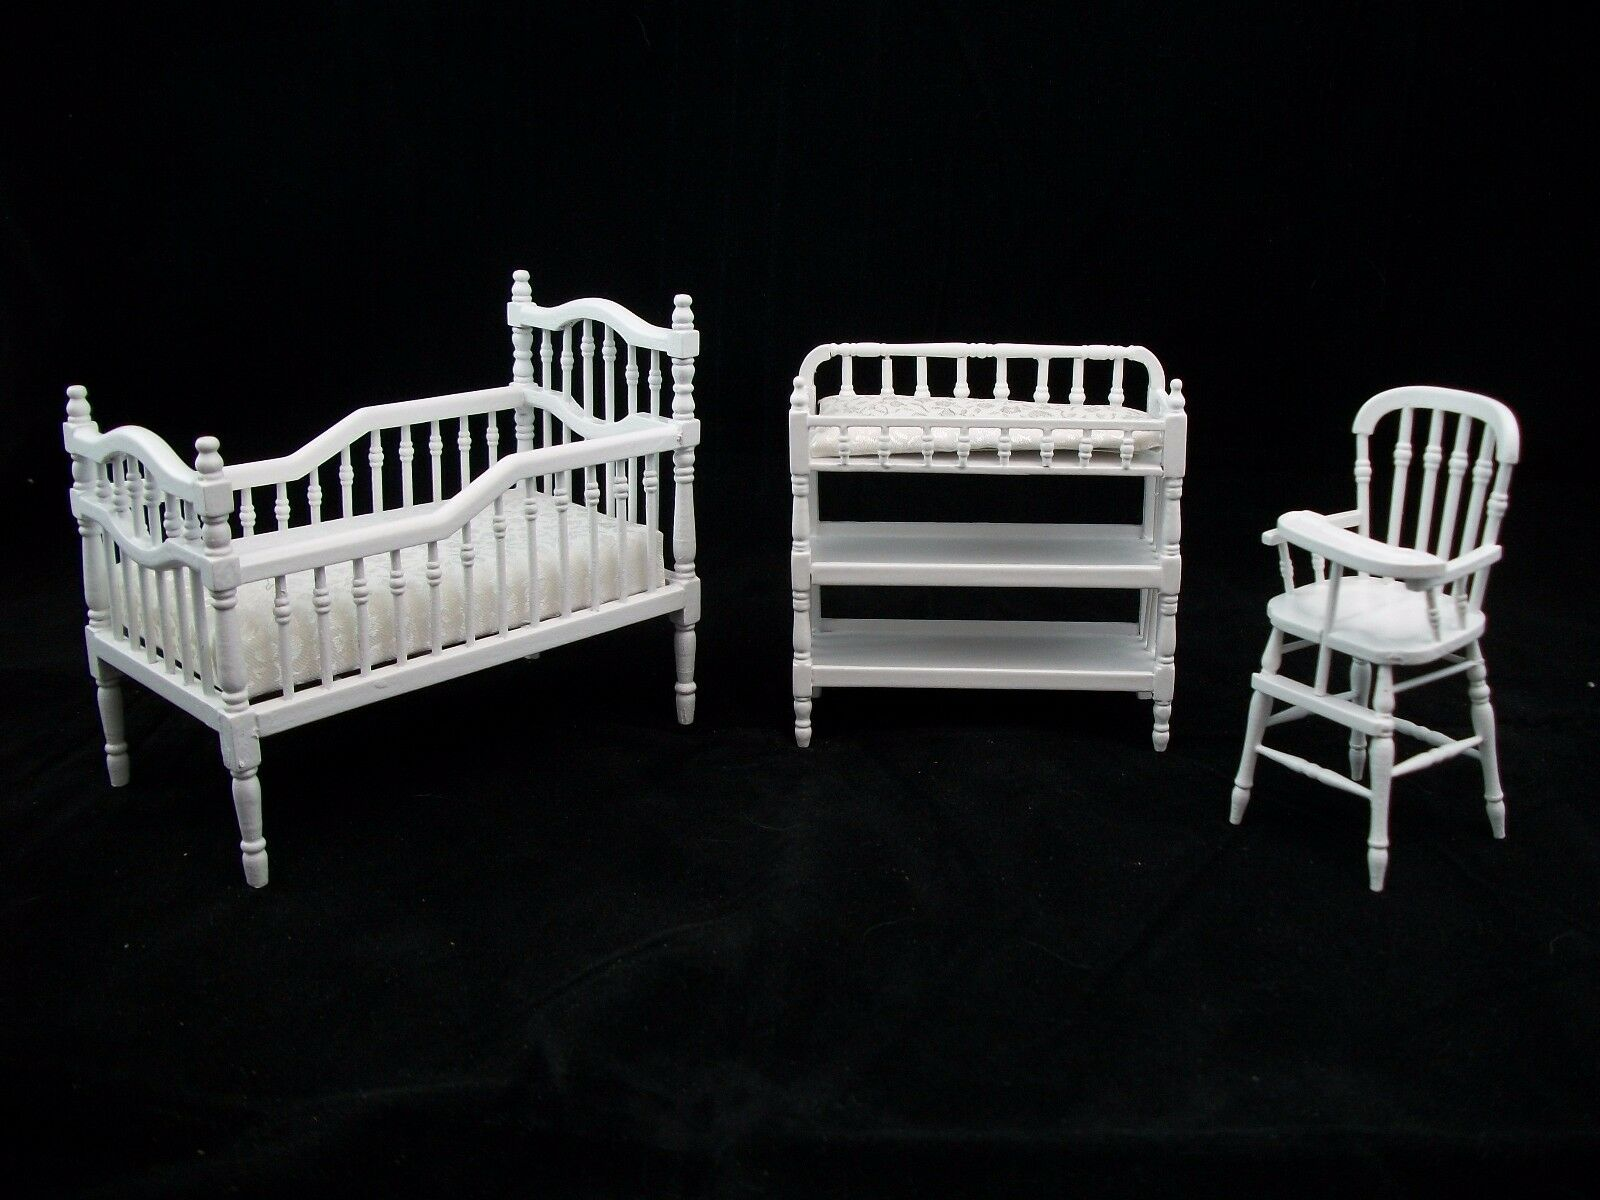 Nursery Baby Room Set bianca dollhouse miniature furniture 1 12 scale T5545 3pc